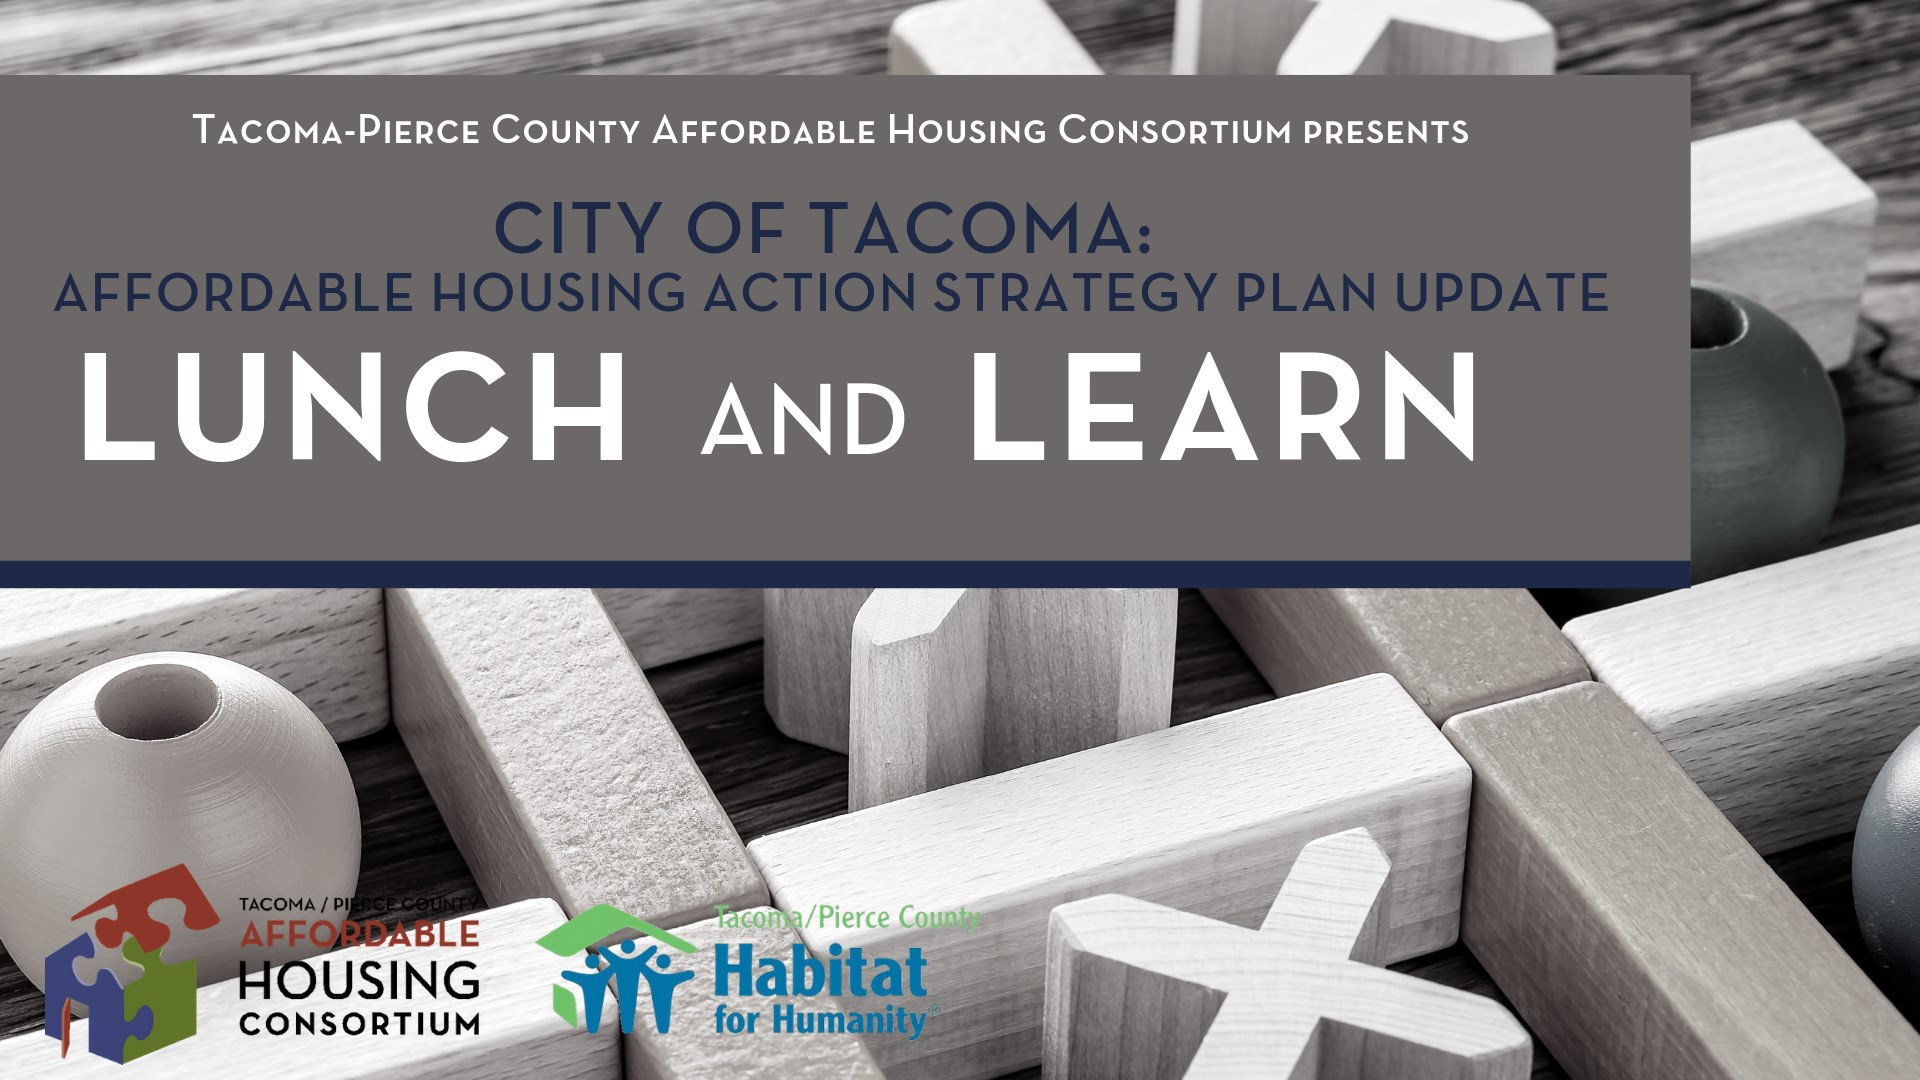 Image from    Tacoma/Pierce County Affordable Housing Consortium